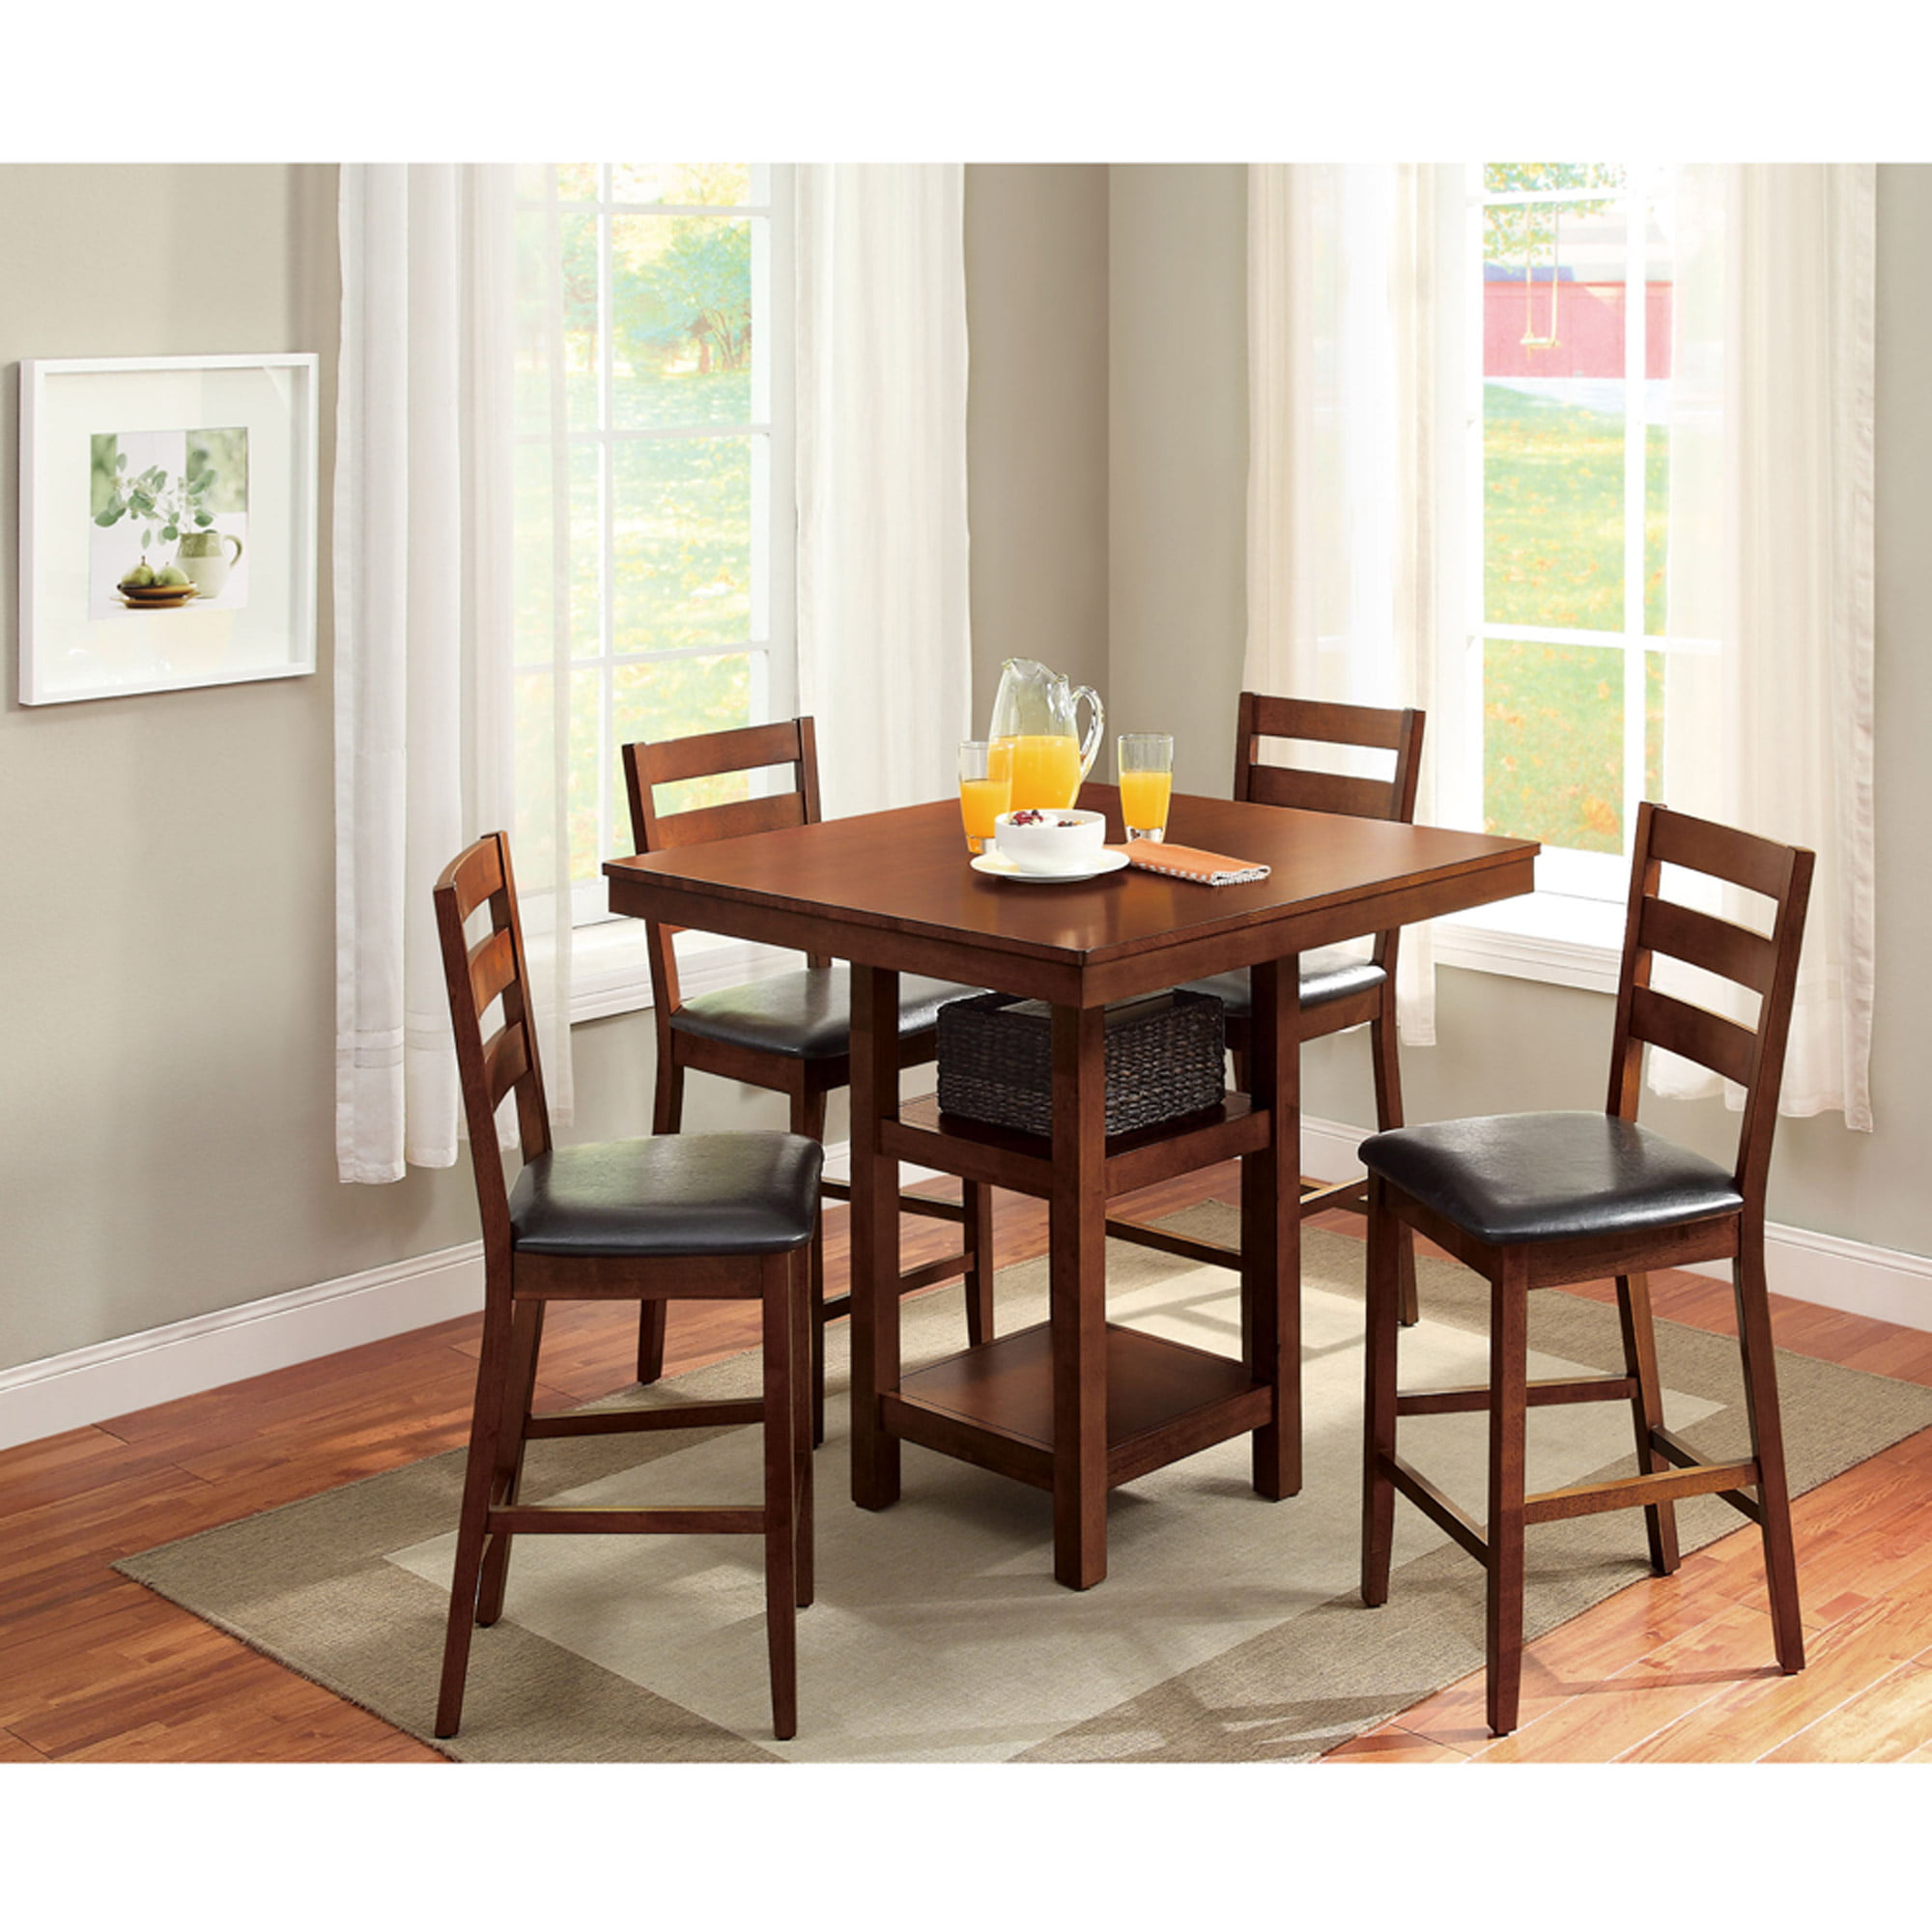 kitchen dining furniture walmartcom - Kitchen Table Counter